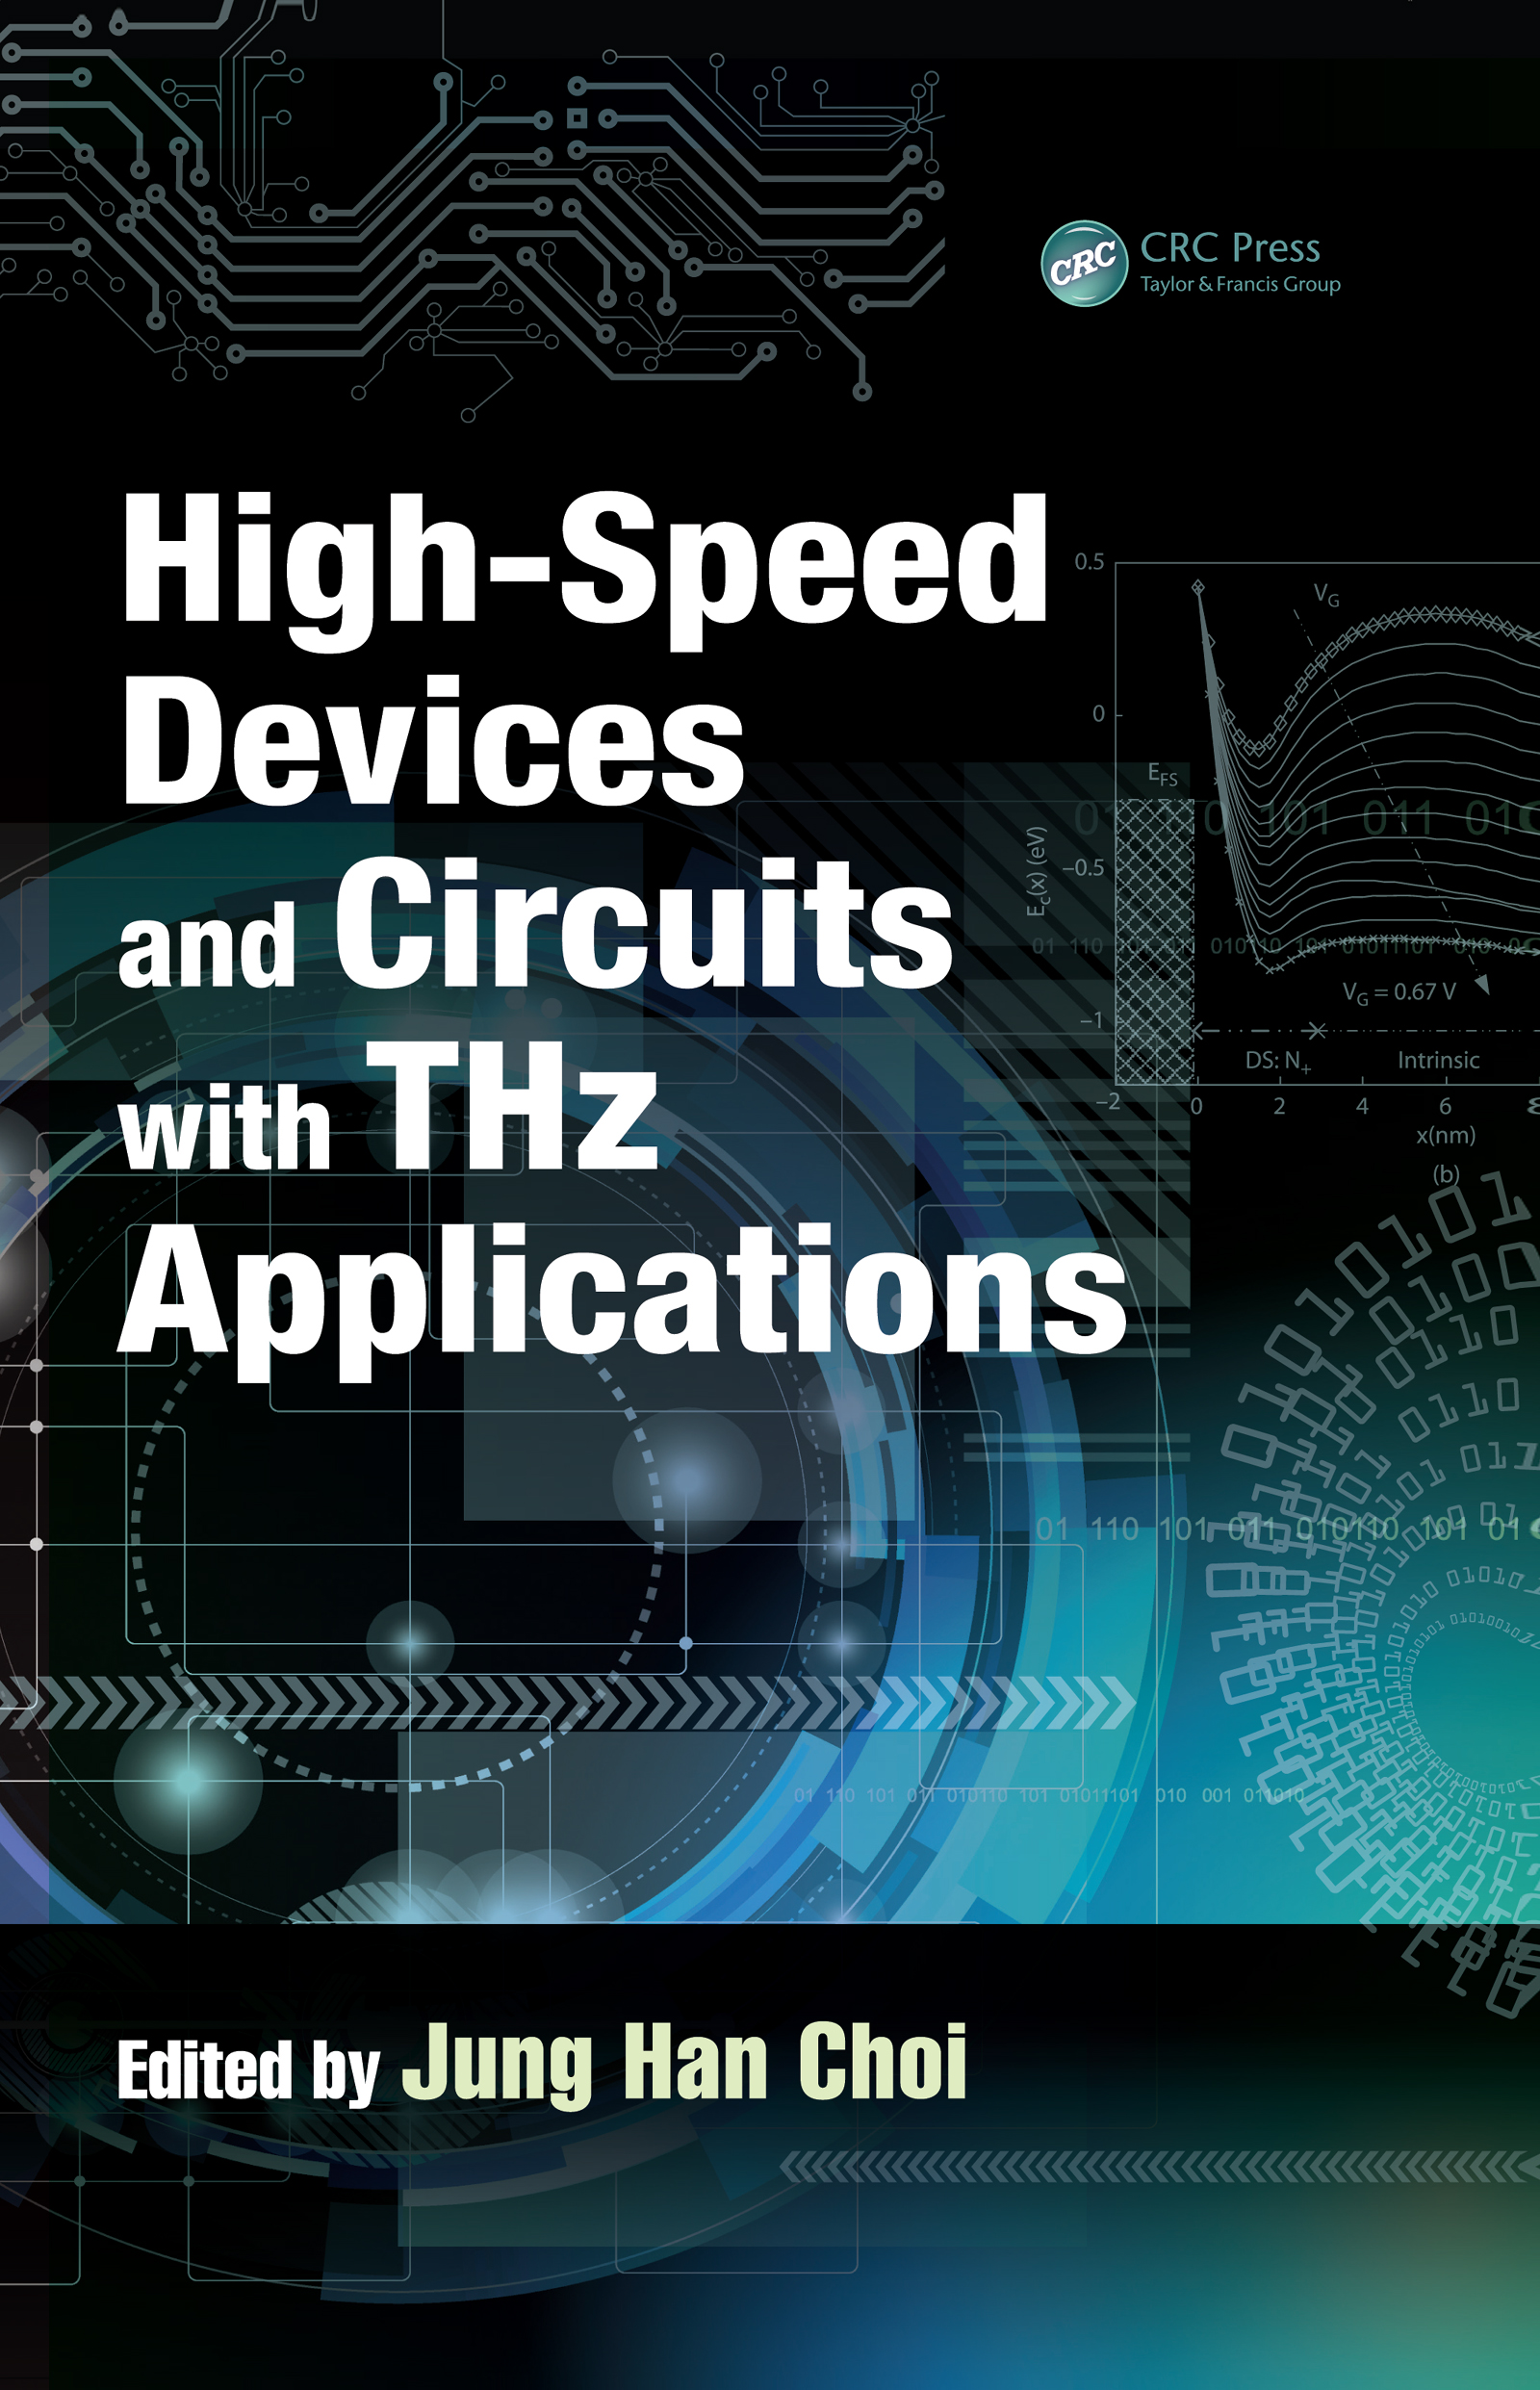 SiGe HBT Technology and Circuits for THz Applications